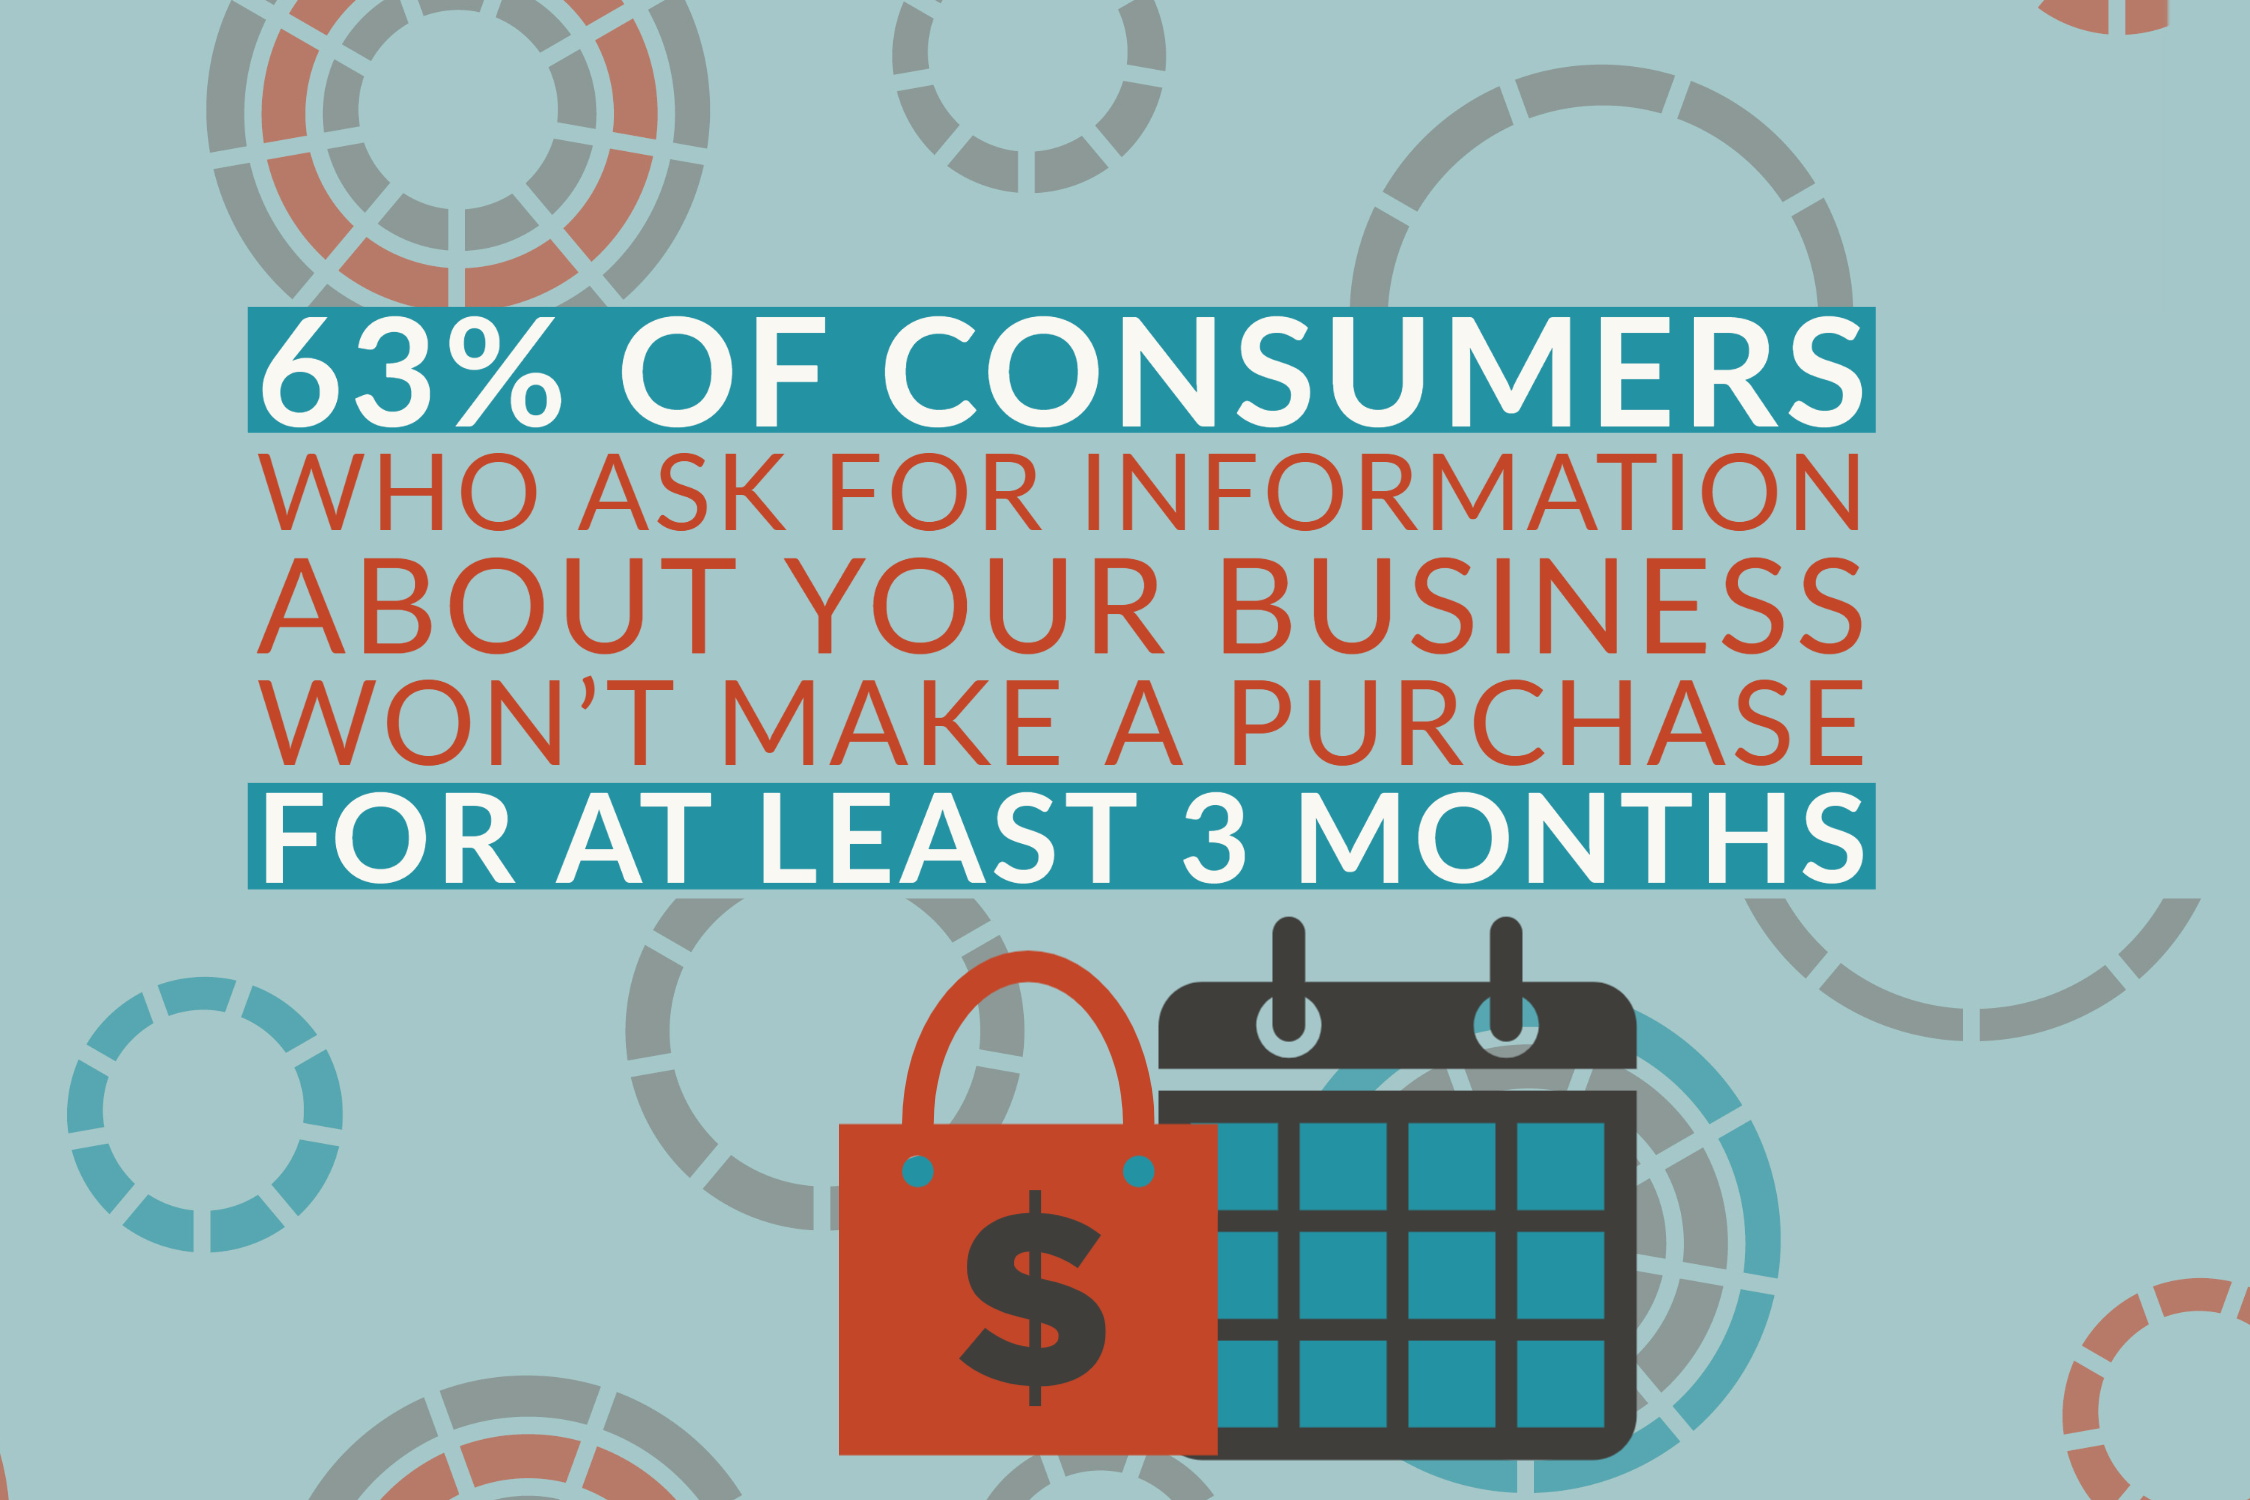 63% of consumers who ask for information about your company won't make a purchase for at least 3 months